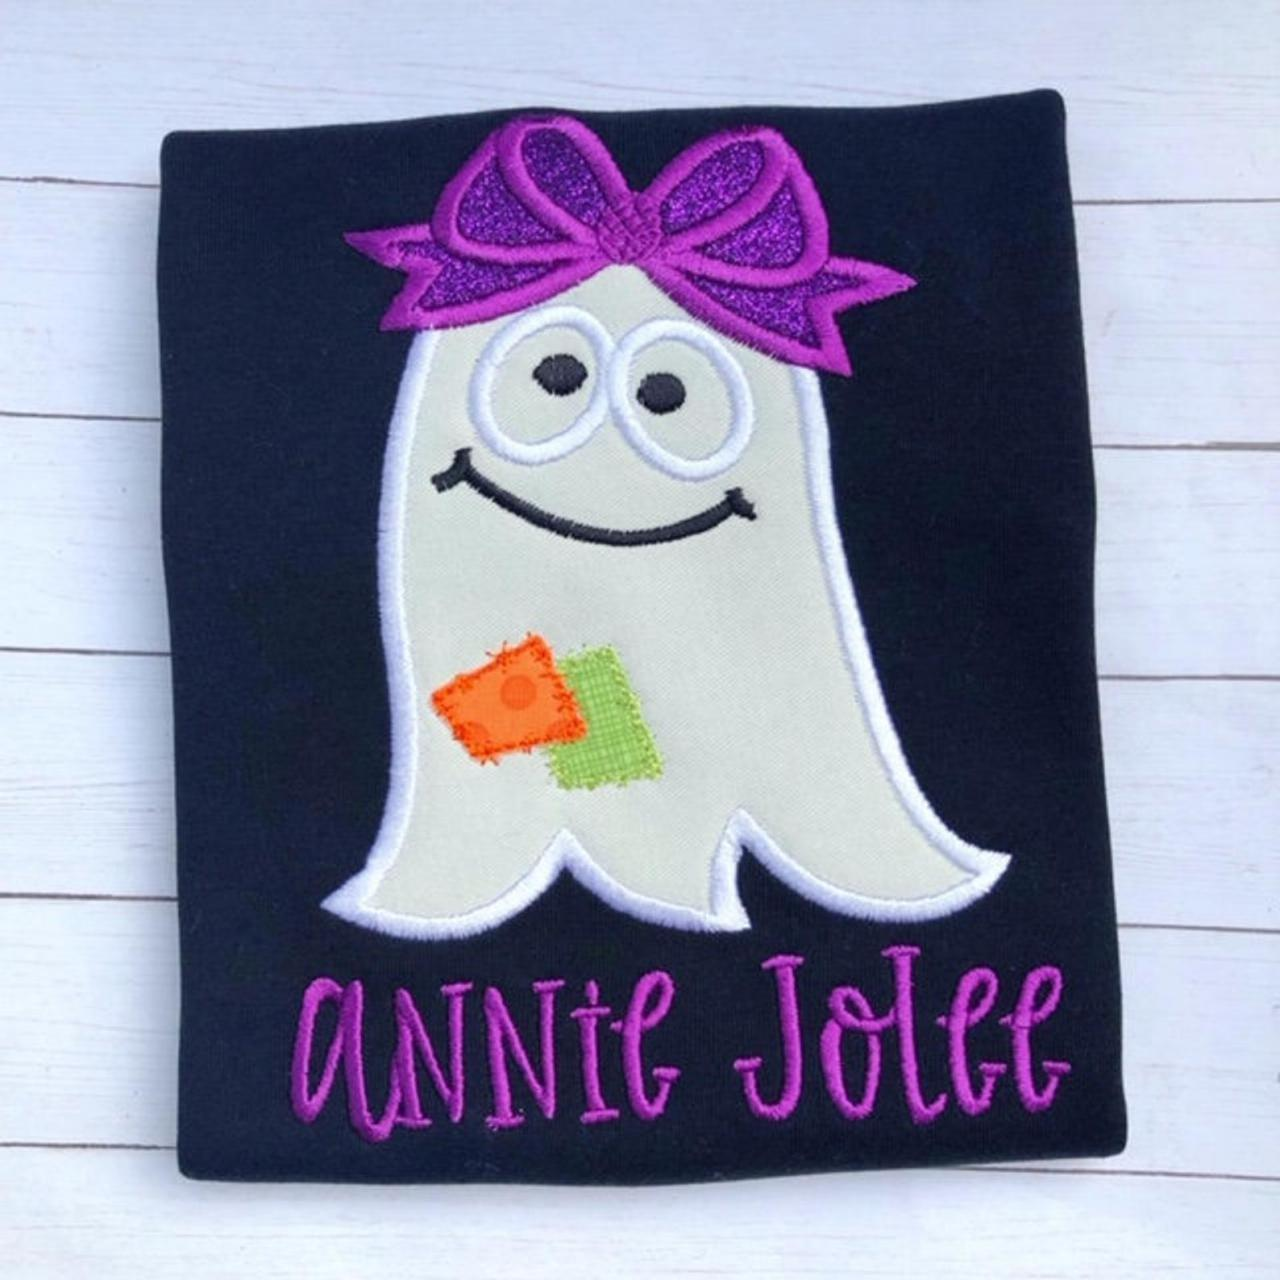 Halloween Ghost Shirt / Girly Ghost Shirt / Ghost Shirt / Ghost with Bow Shirt / Custom Embroidered Shirt / Girly Halloween Shirt / Monogram